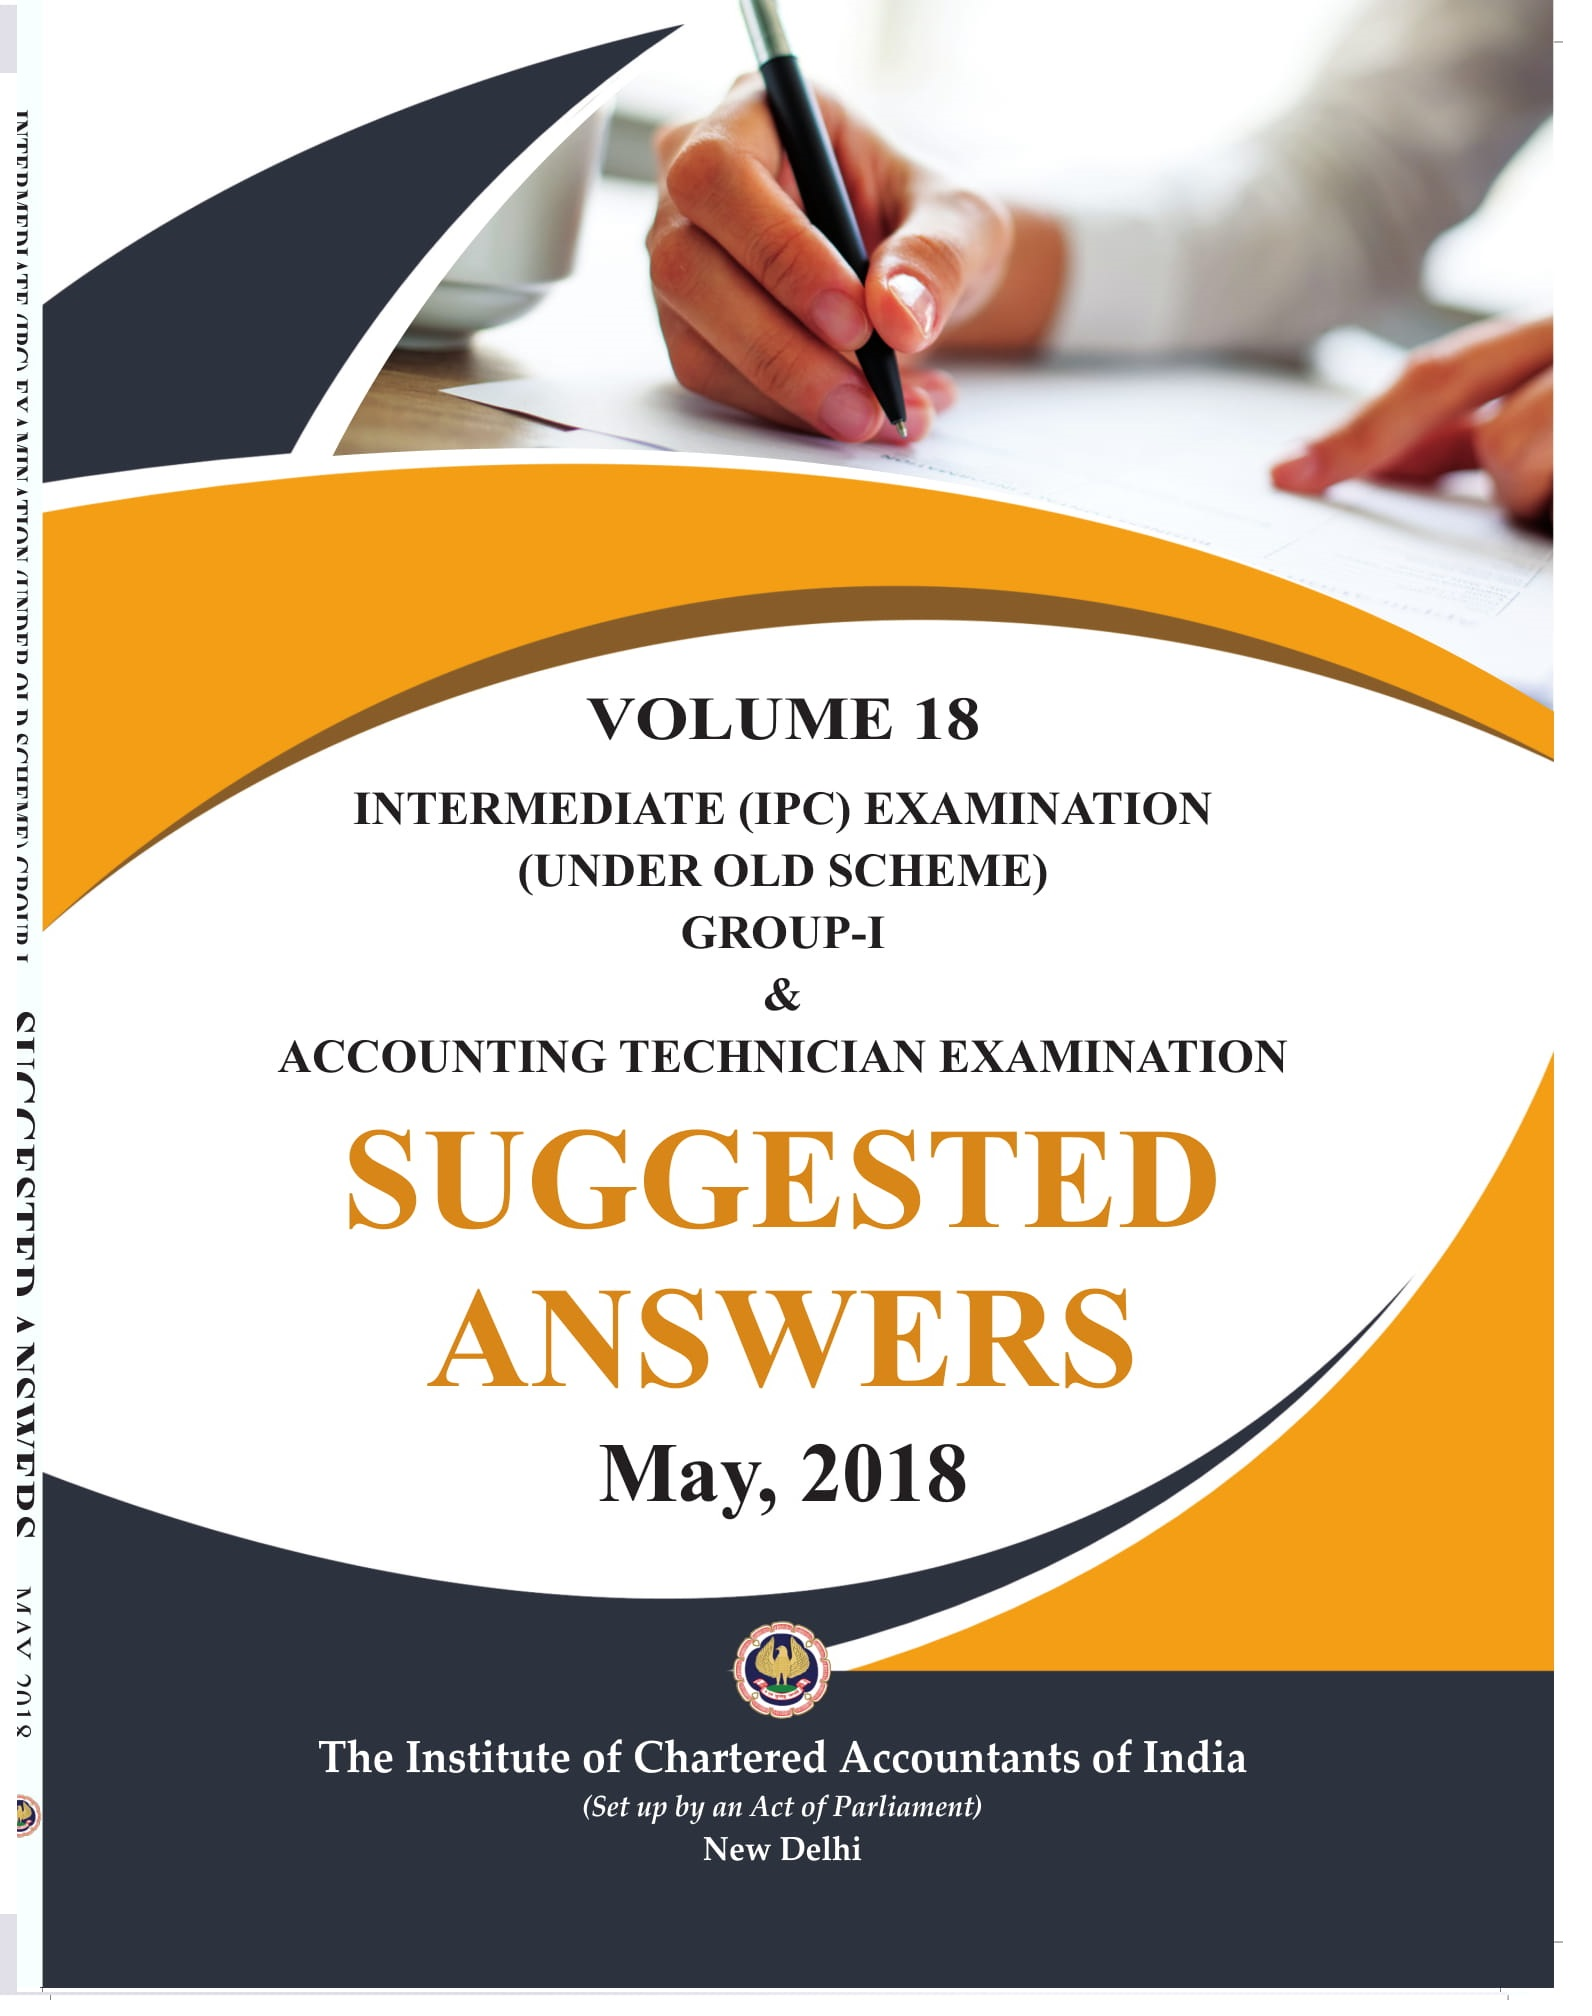 Intermediate (IPC) Examination (Under Old Scheme) and Accounting Technician Examination Group-1 Suggested Answer May, 2018